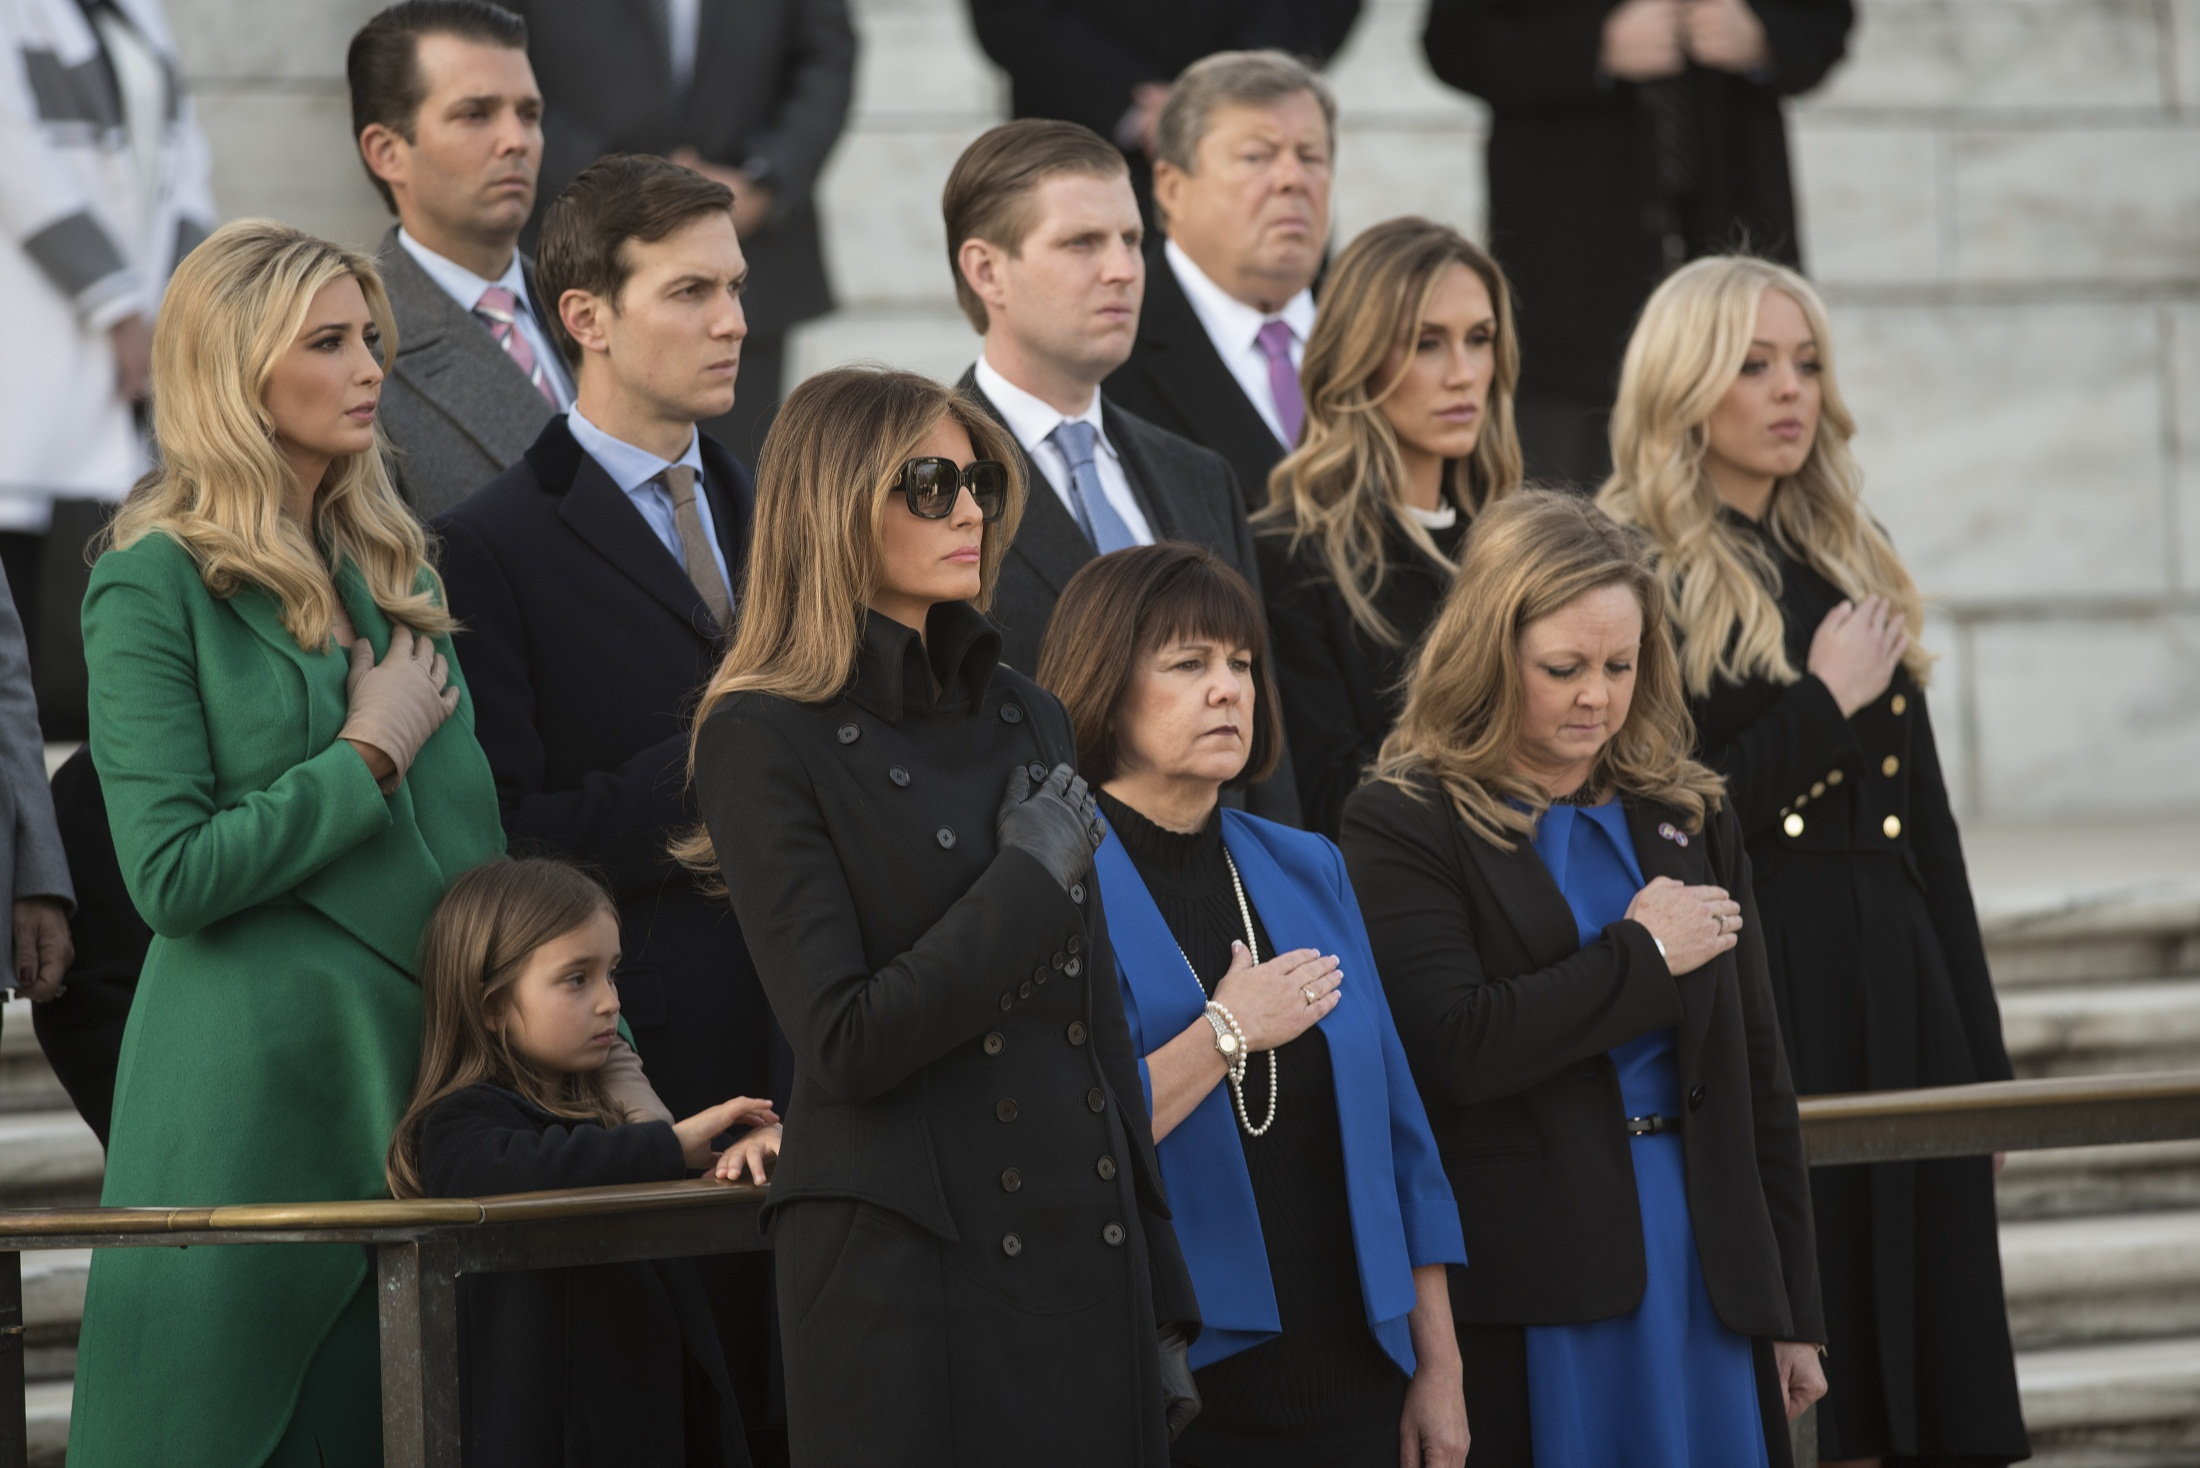 Family member watch as US President-elect Donald Trump and Vice President-elect Mike Pence take part in a wreath-laying ceremony at Arlington National Cemetery in Arlington, Virginia on January 19, 2017 / AFP PHOTO / MANDEL NGAN